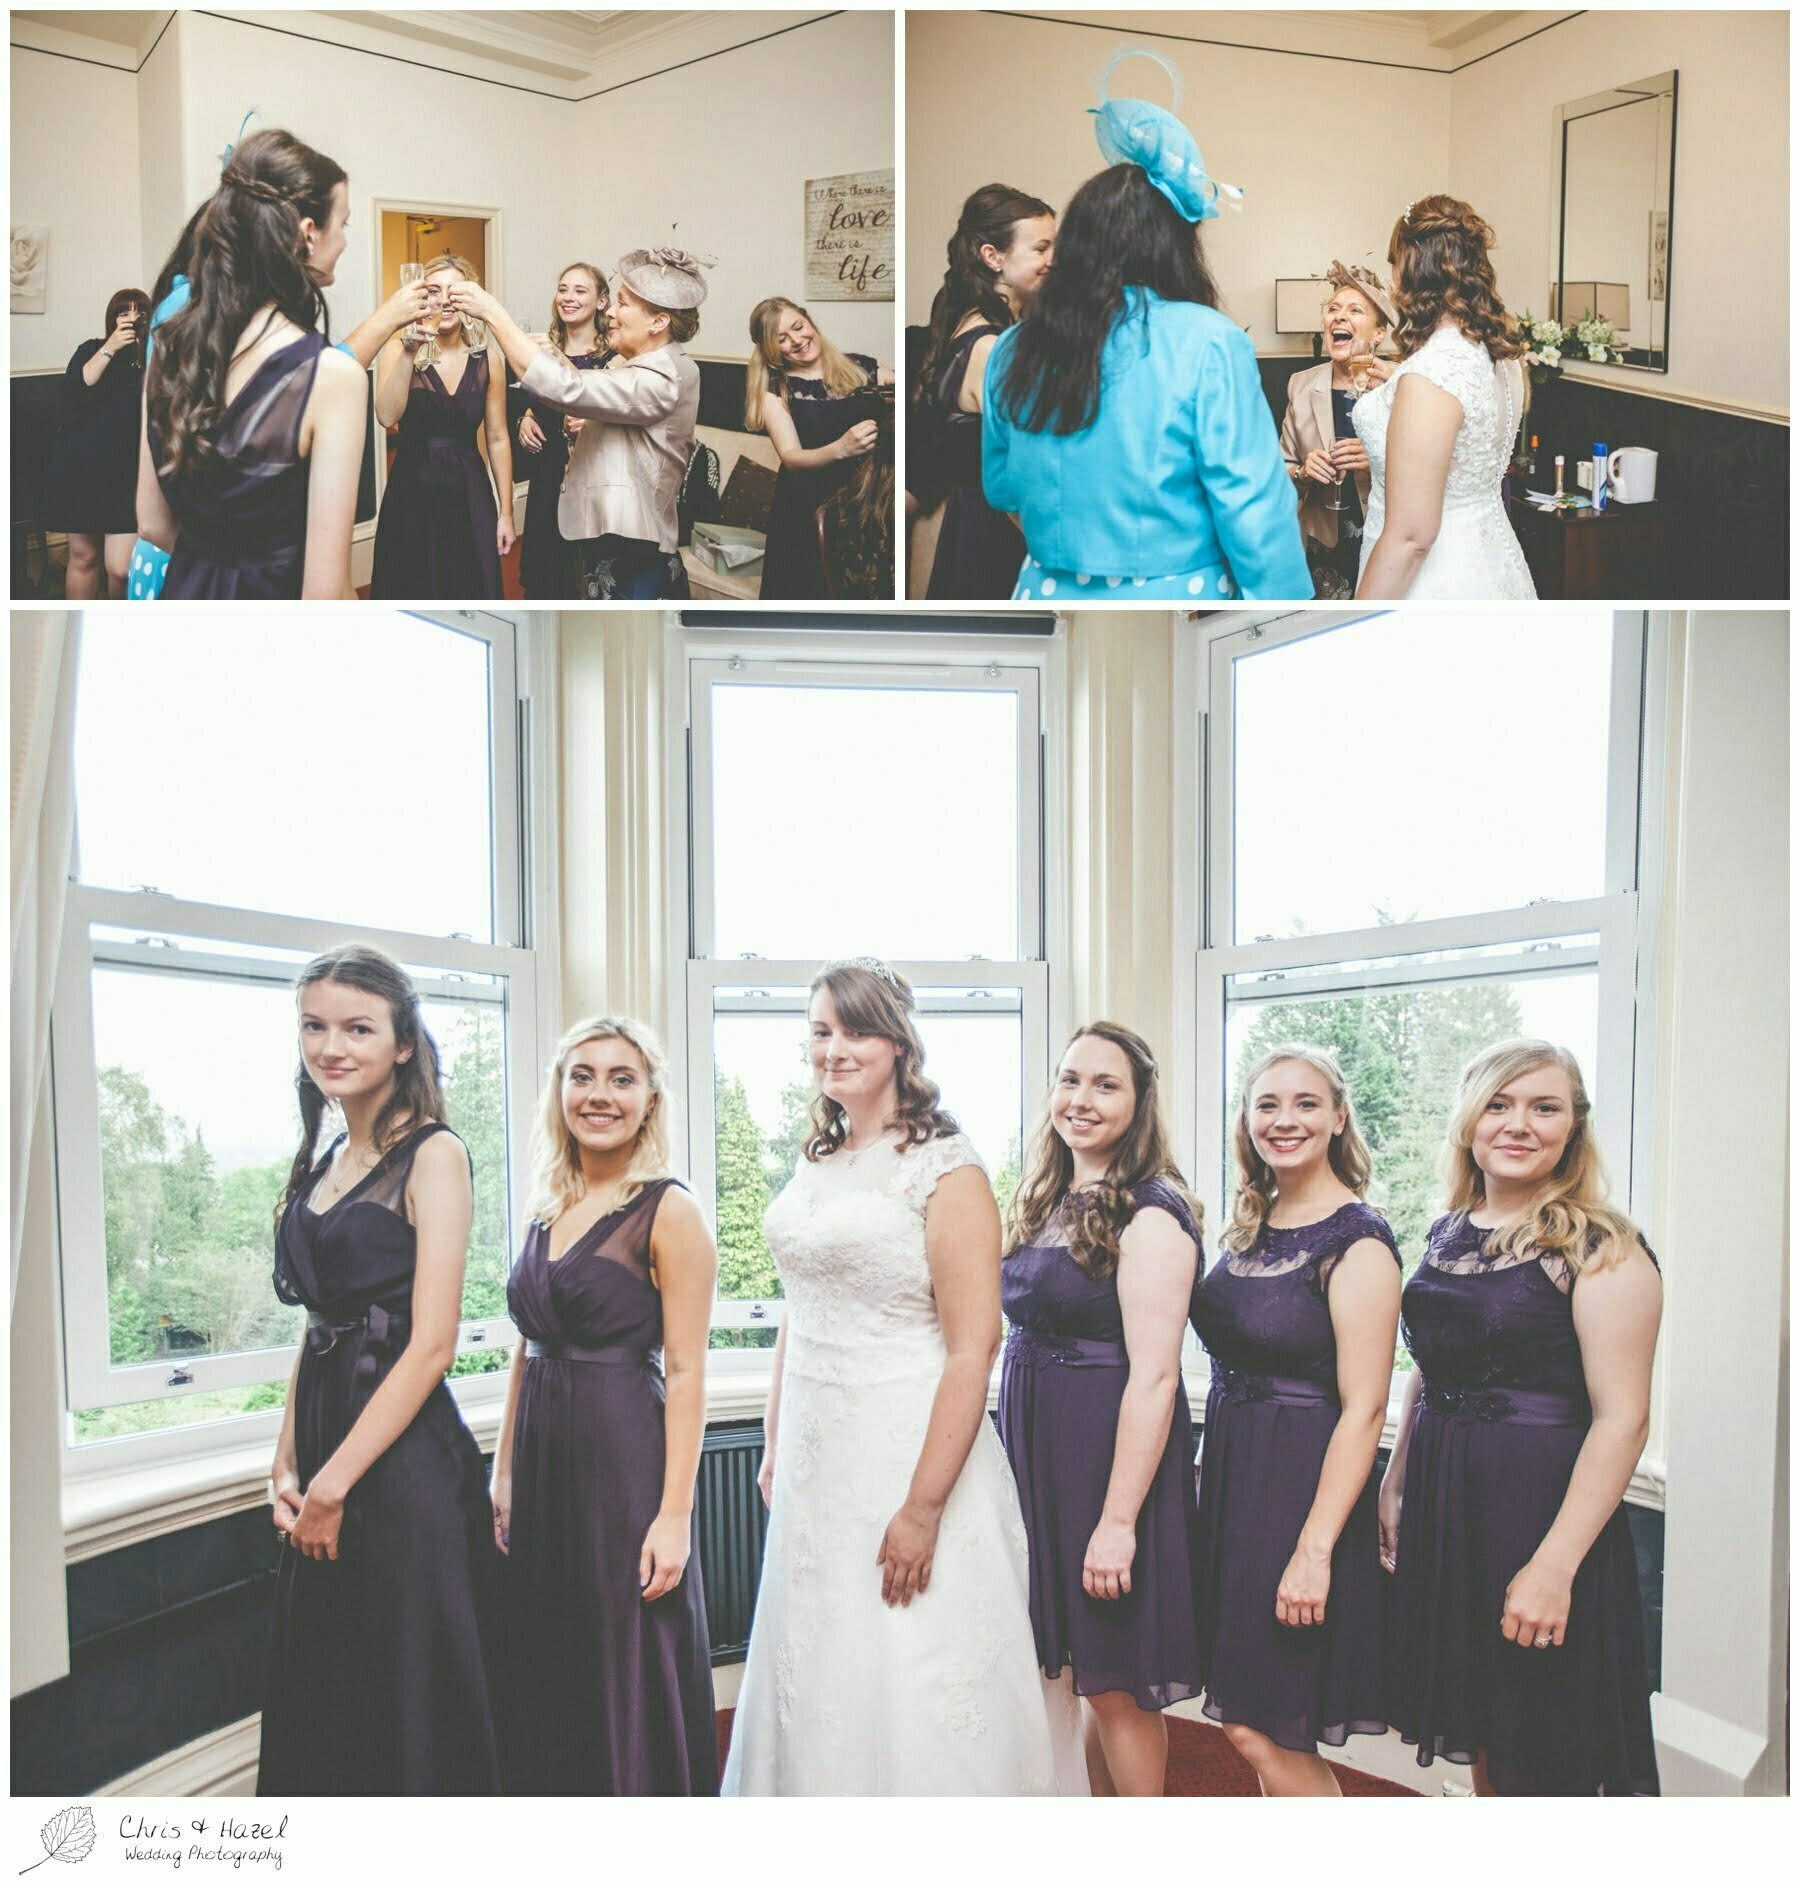 bride with bridesmaids, bride and bridesmaids formal photograph, Ilkley wedding photographer, Ilkley wedding photography, The Craiglands hotel wedding photography, west Yorkshire wedding photography, chris and hazel wedding photography, emily nunwick, sam nicholson, emily nicholson,